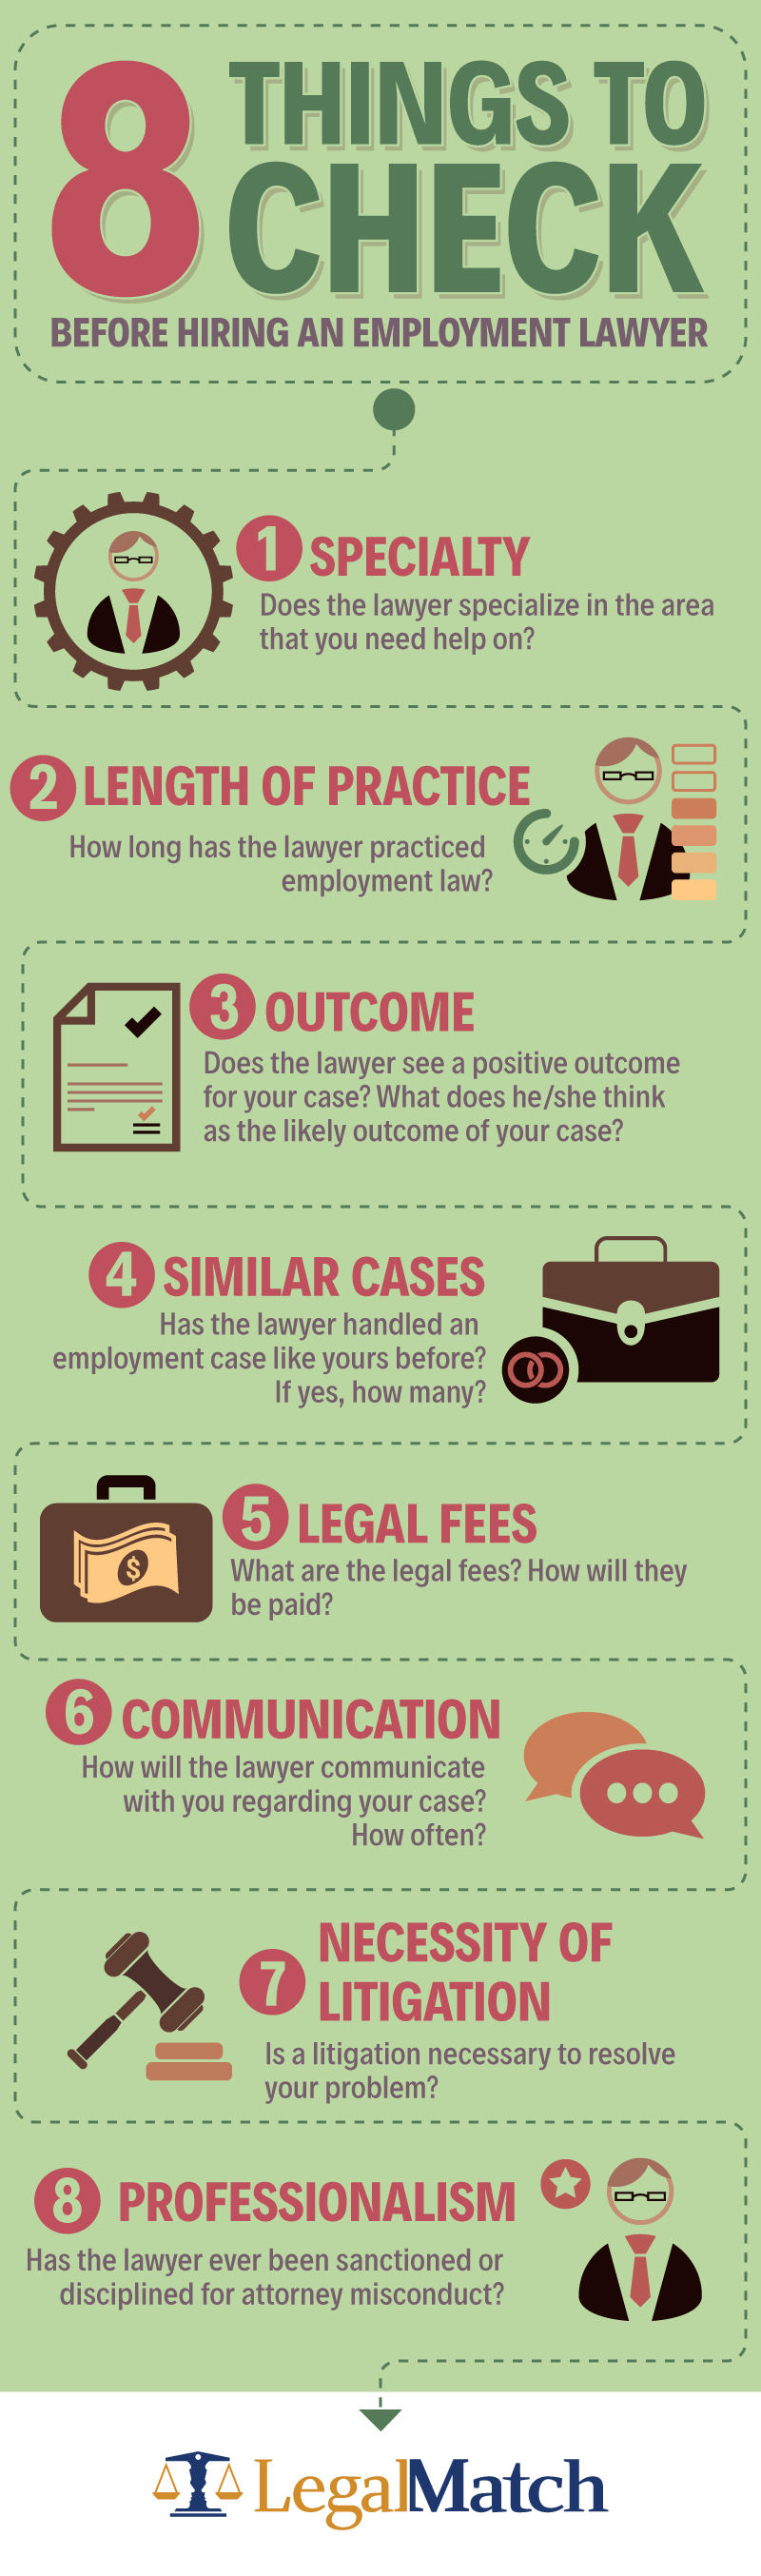 Eight things to check before hiring an employment lawyer